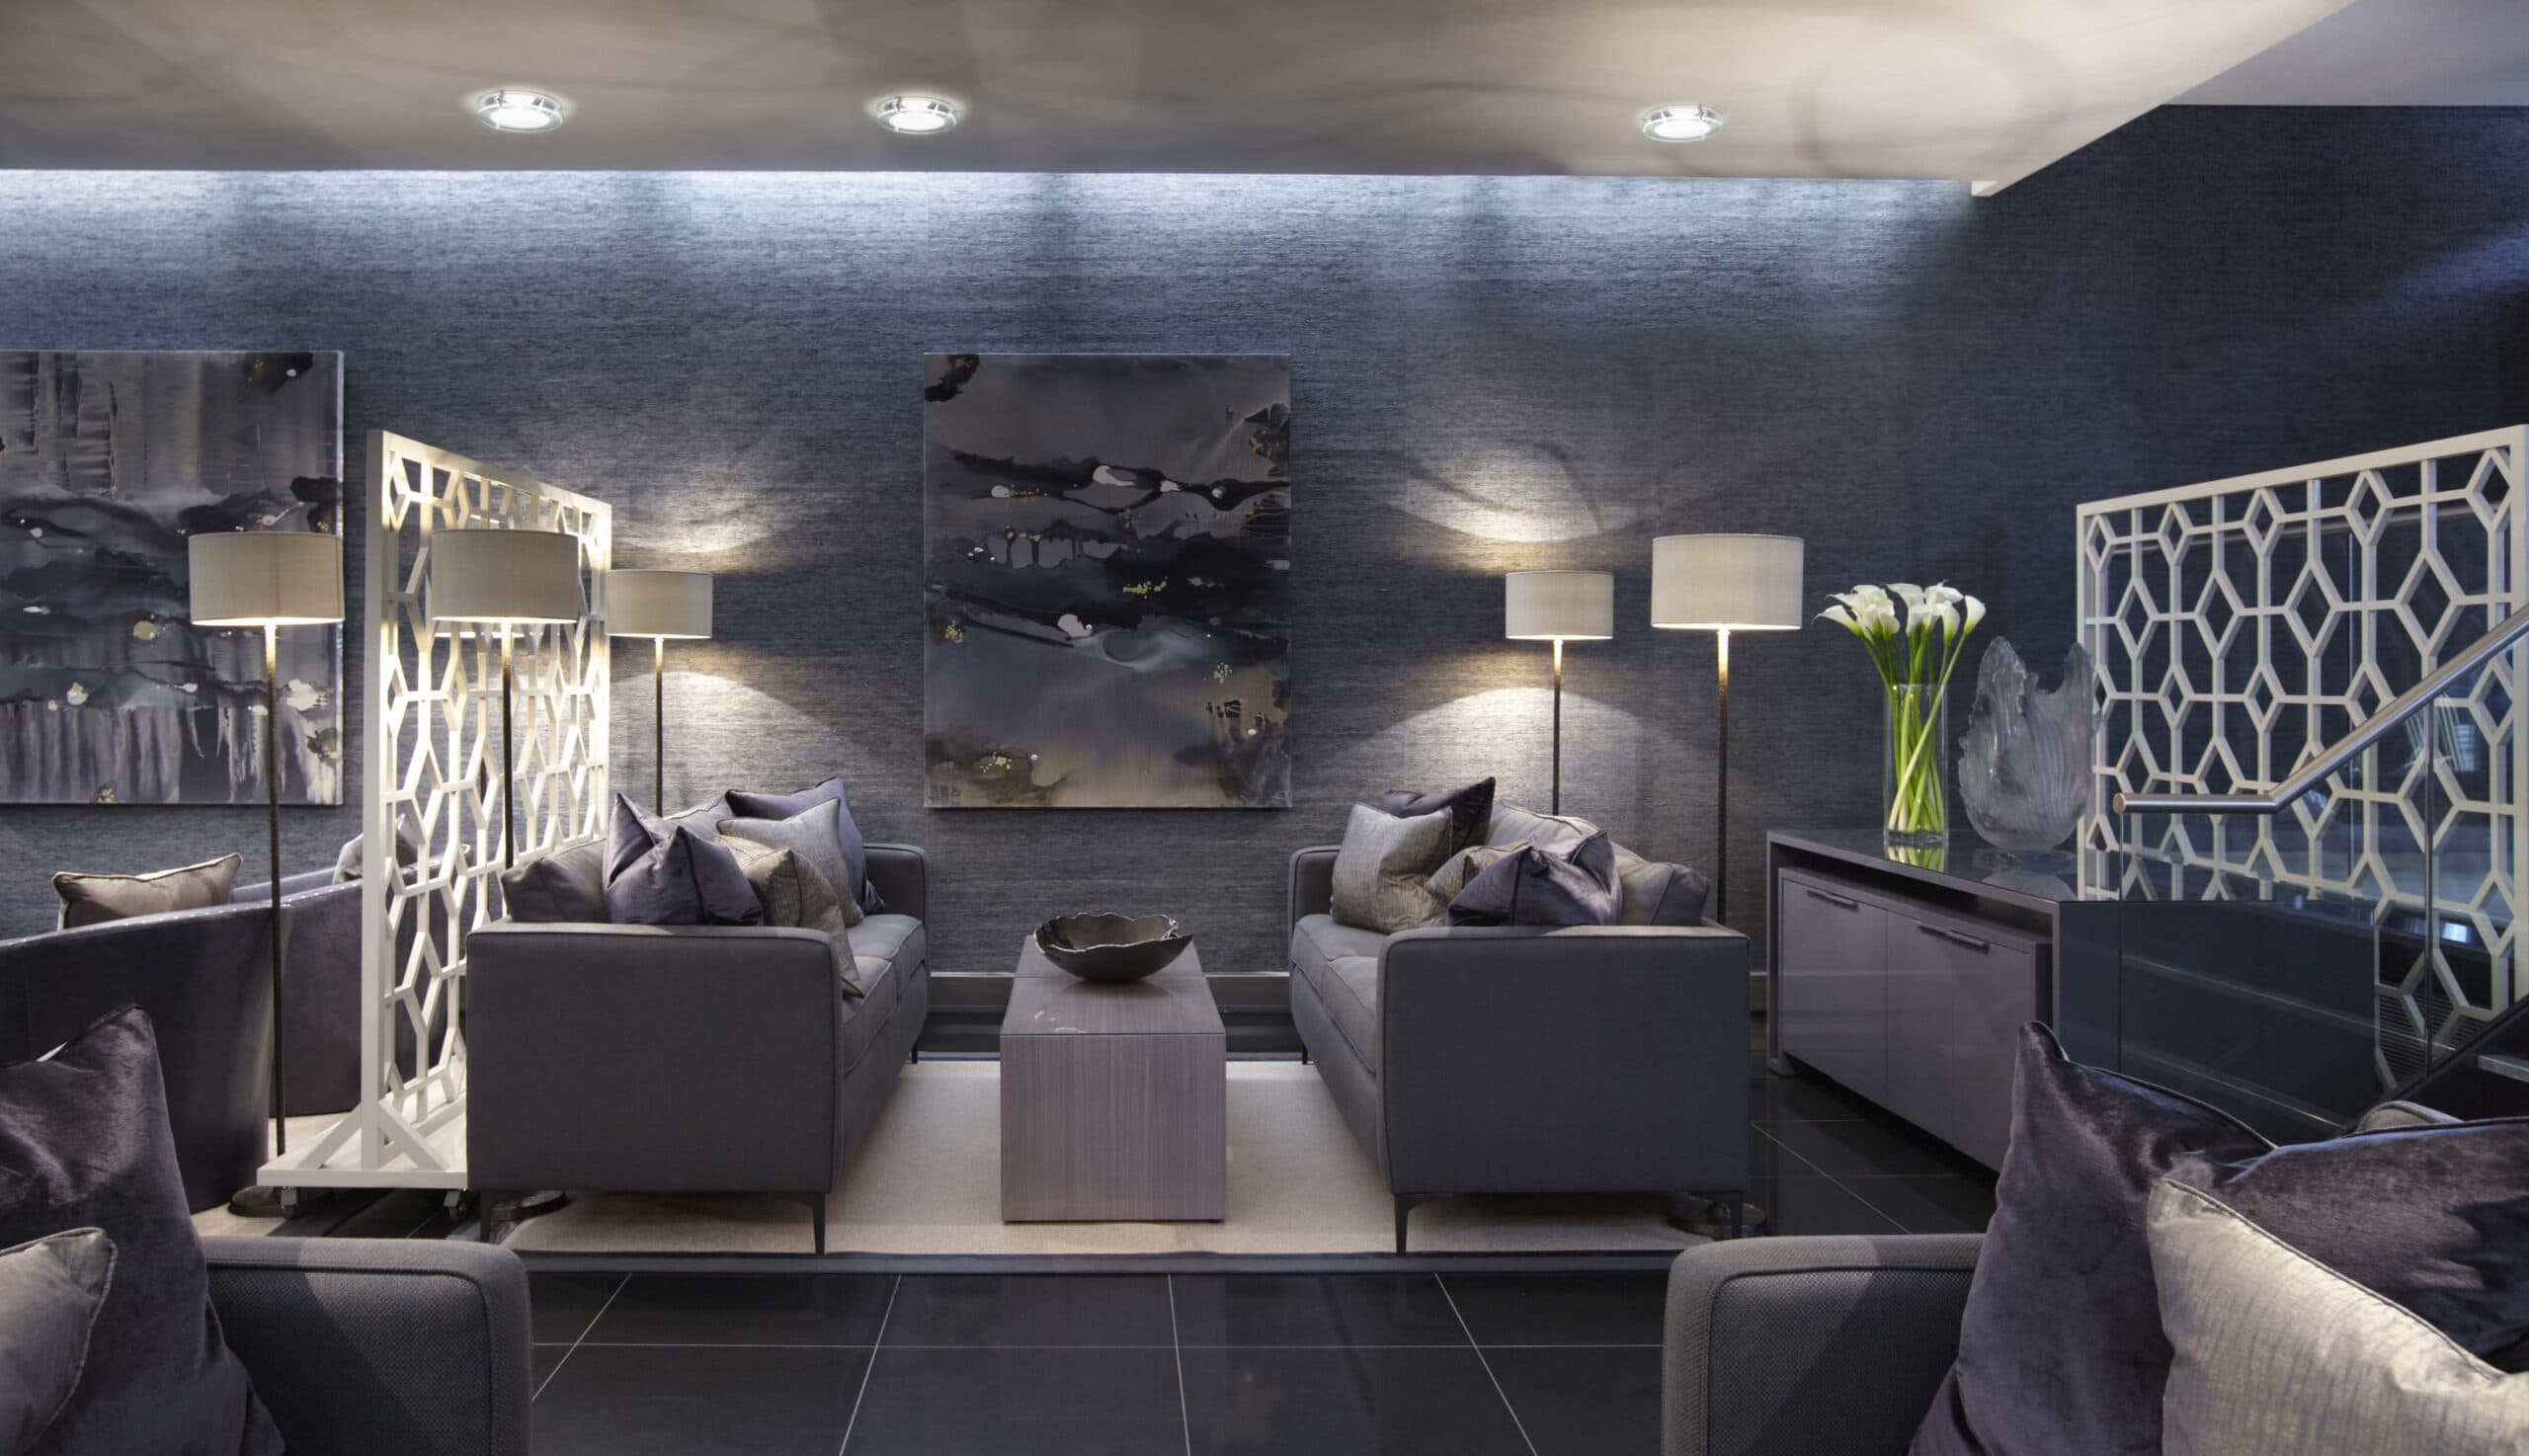 Heathrow private lounge designed by the Katharine Pooley studio